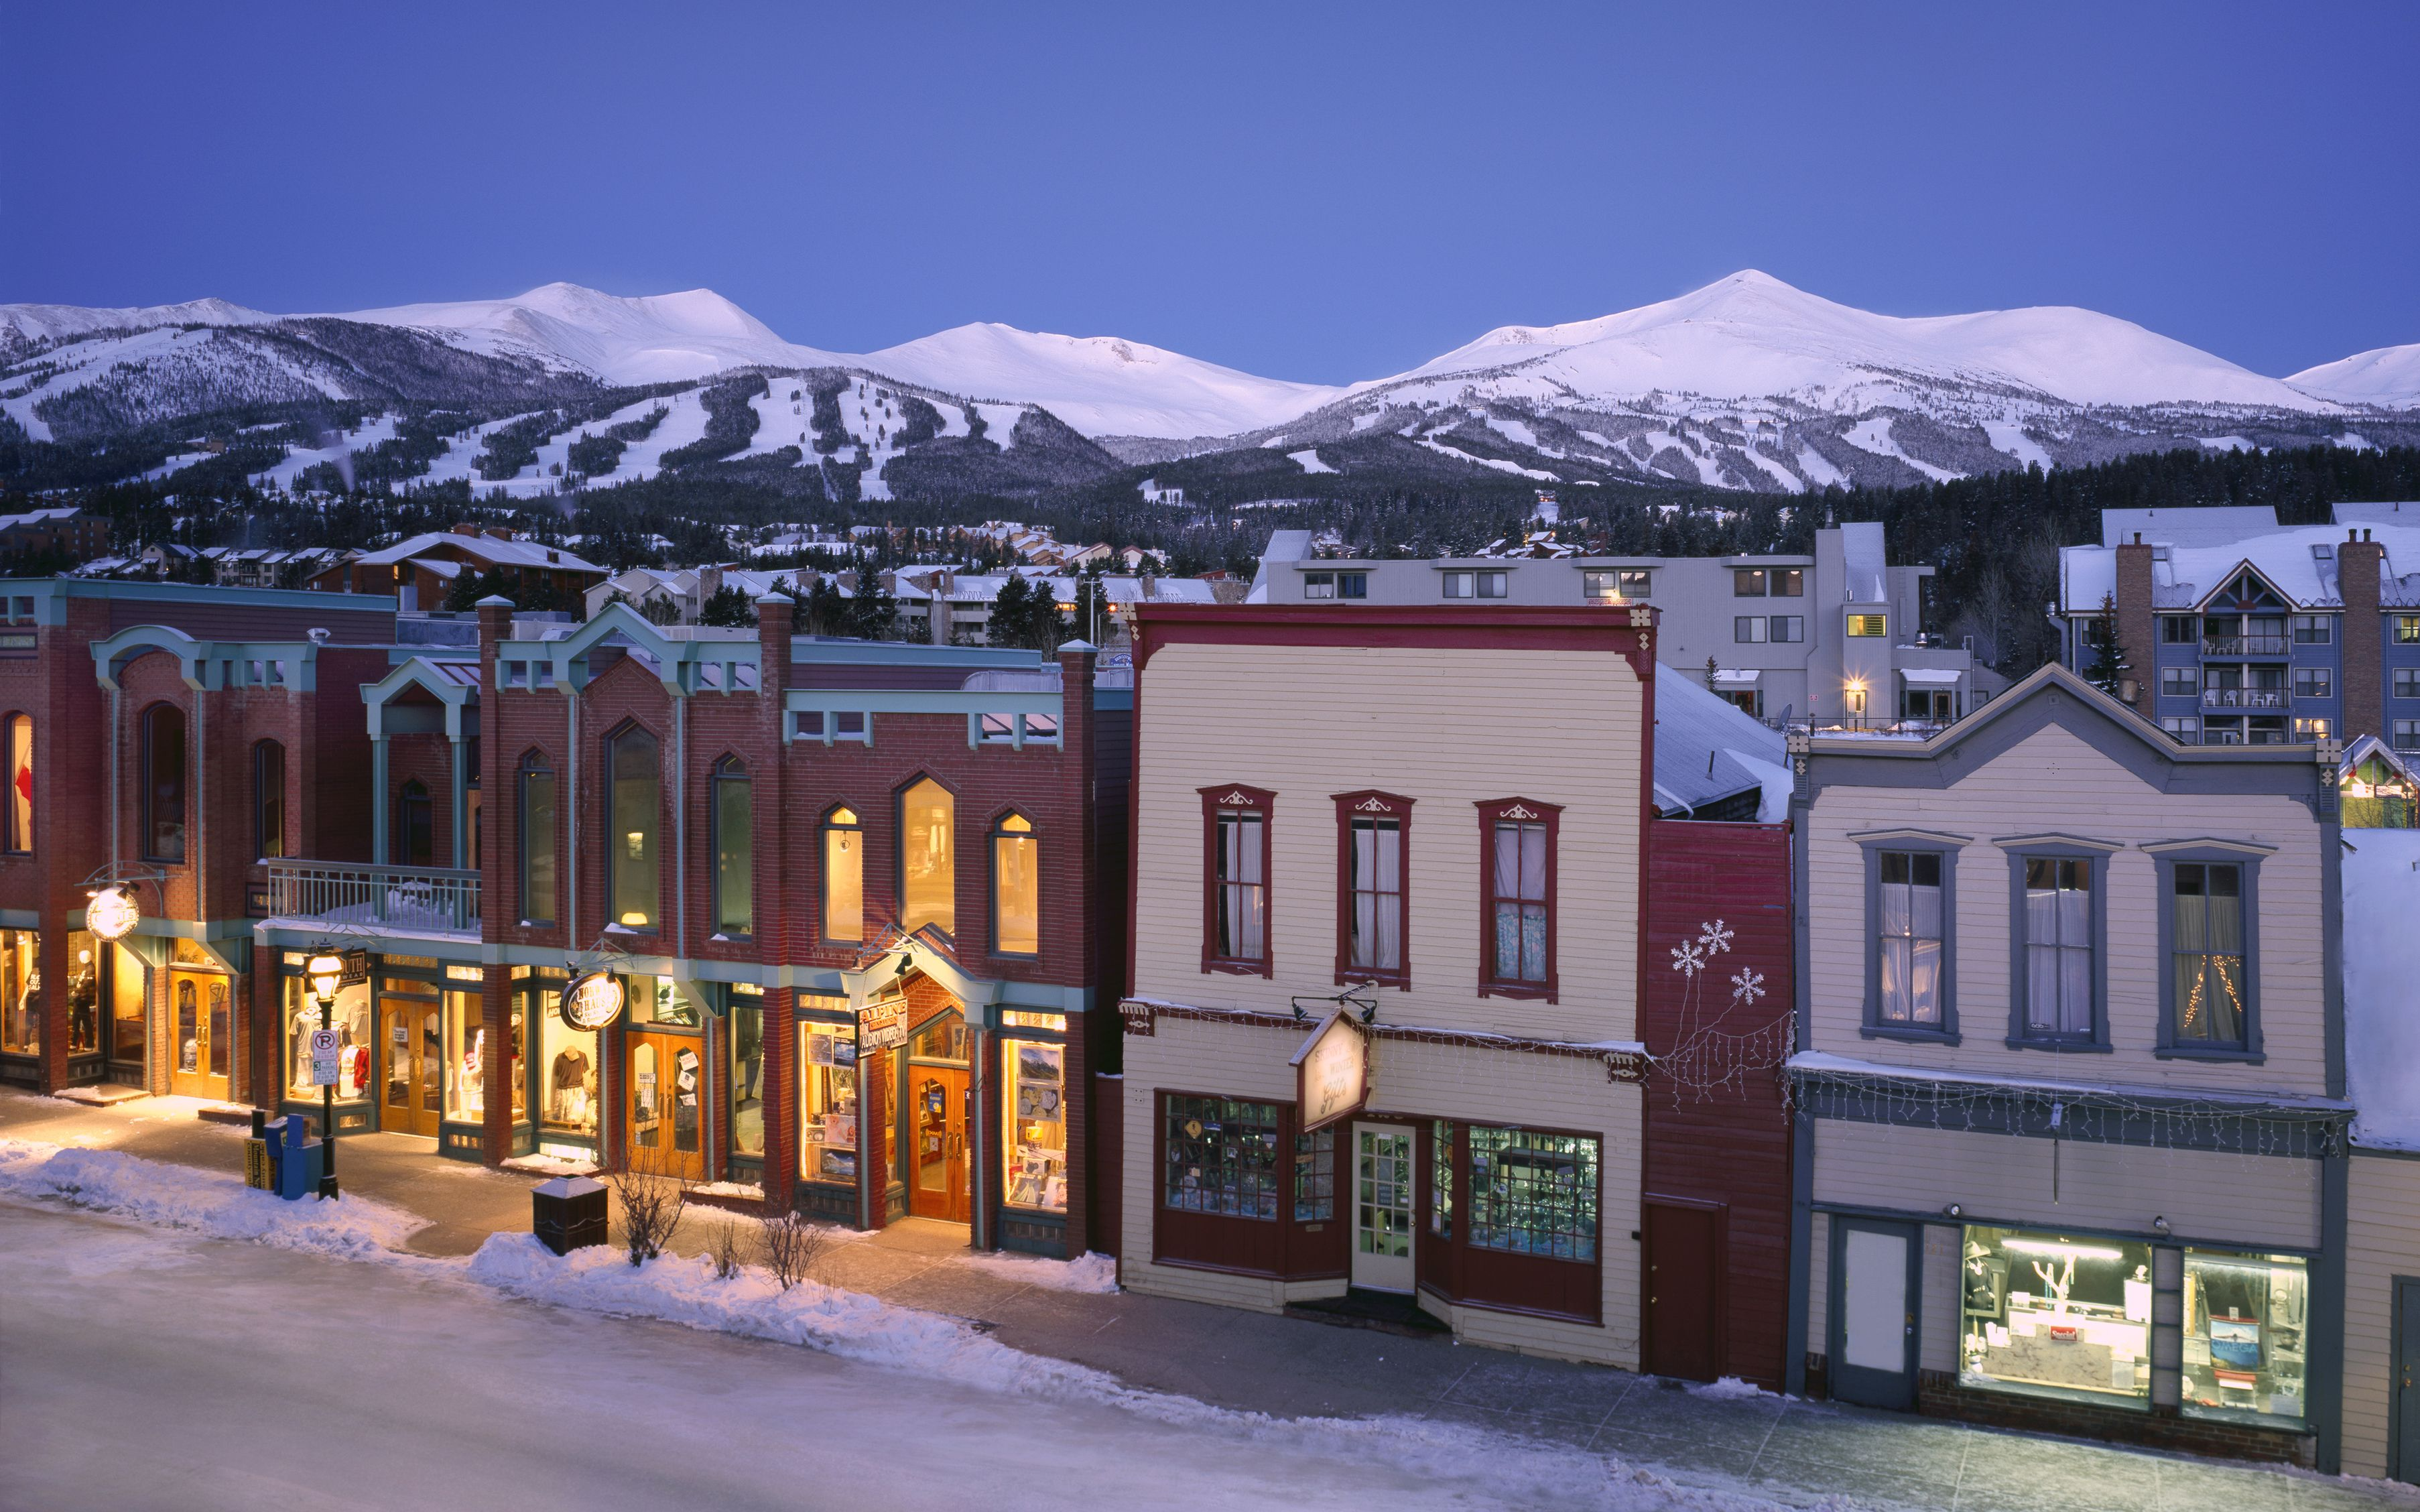 the town of breckenridge sits sweetly under the resort one evening